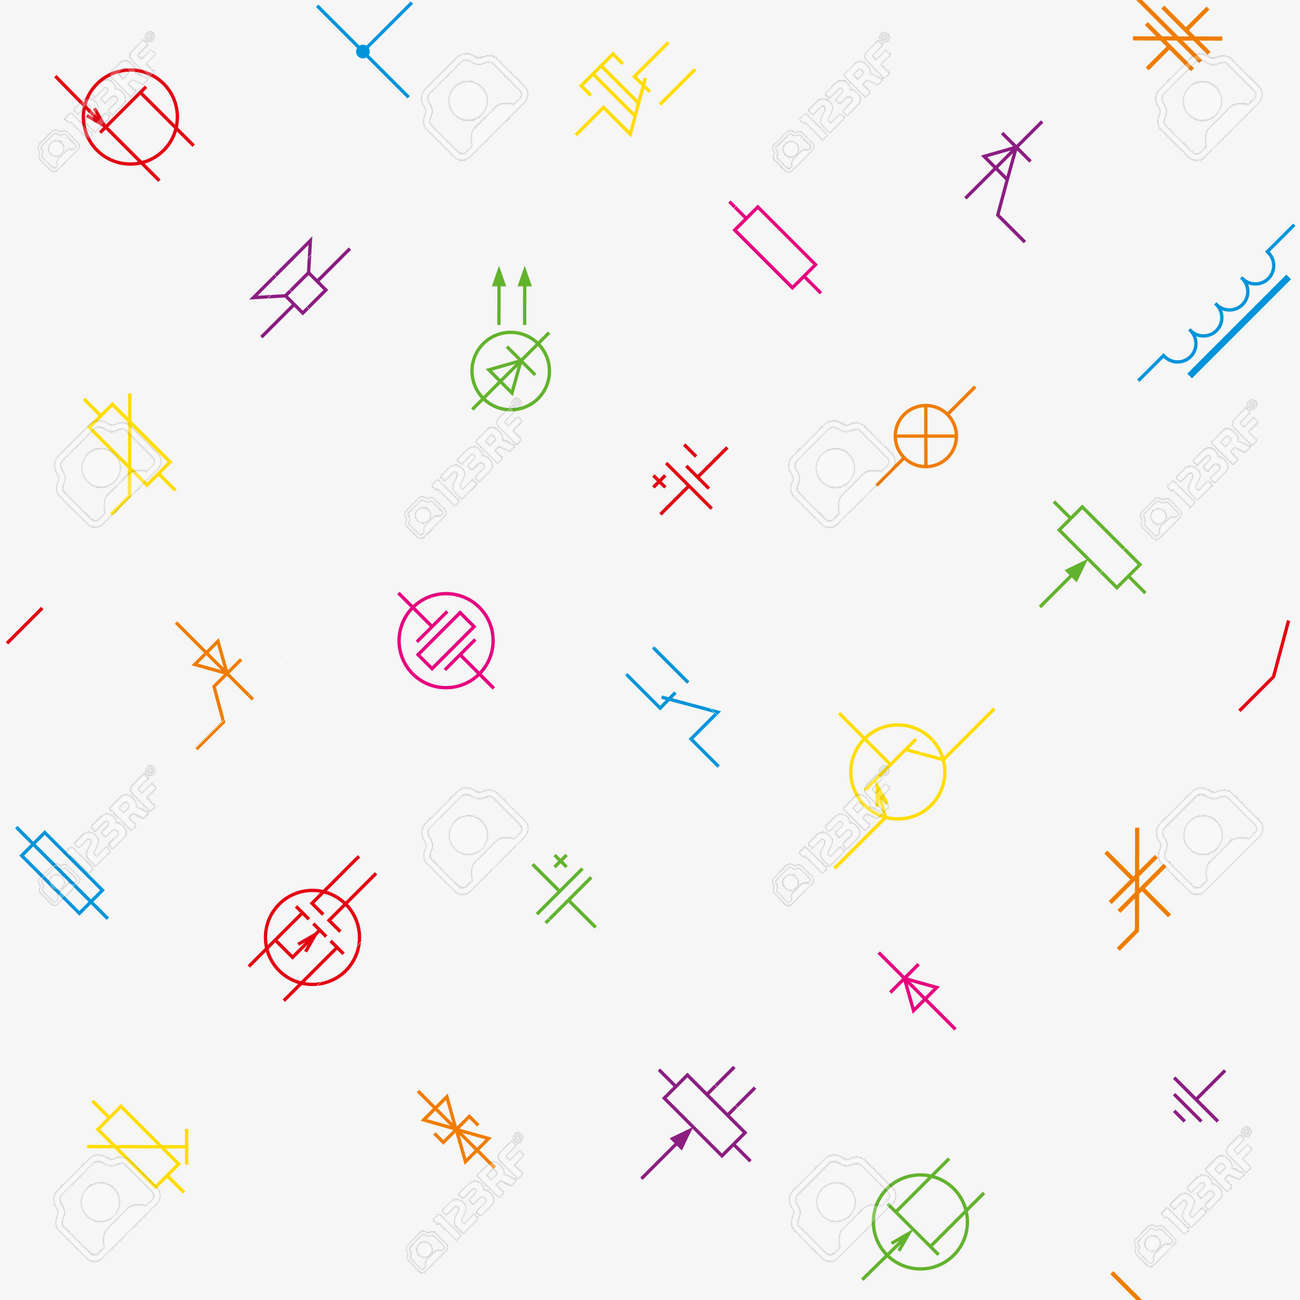 Electronics Circuit Components Symbols Seamless Wallpaper Pattern And Vector Background With Radionic Elements Stock